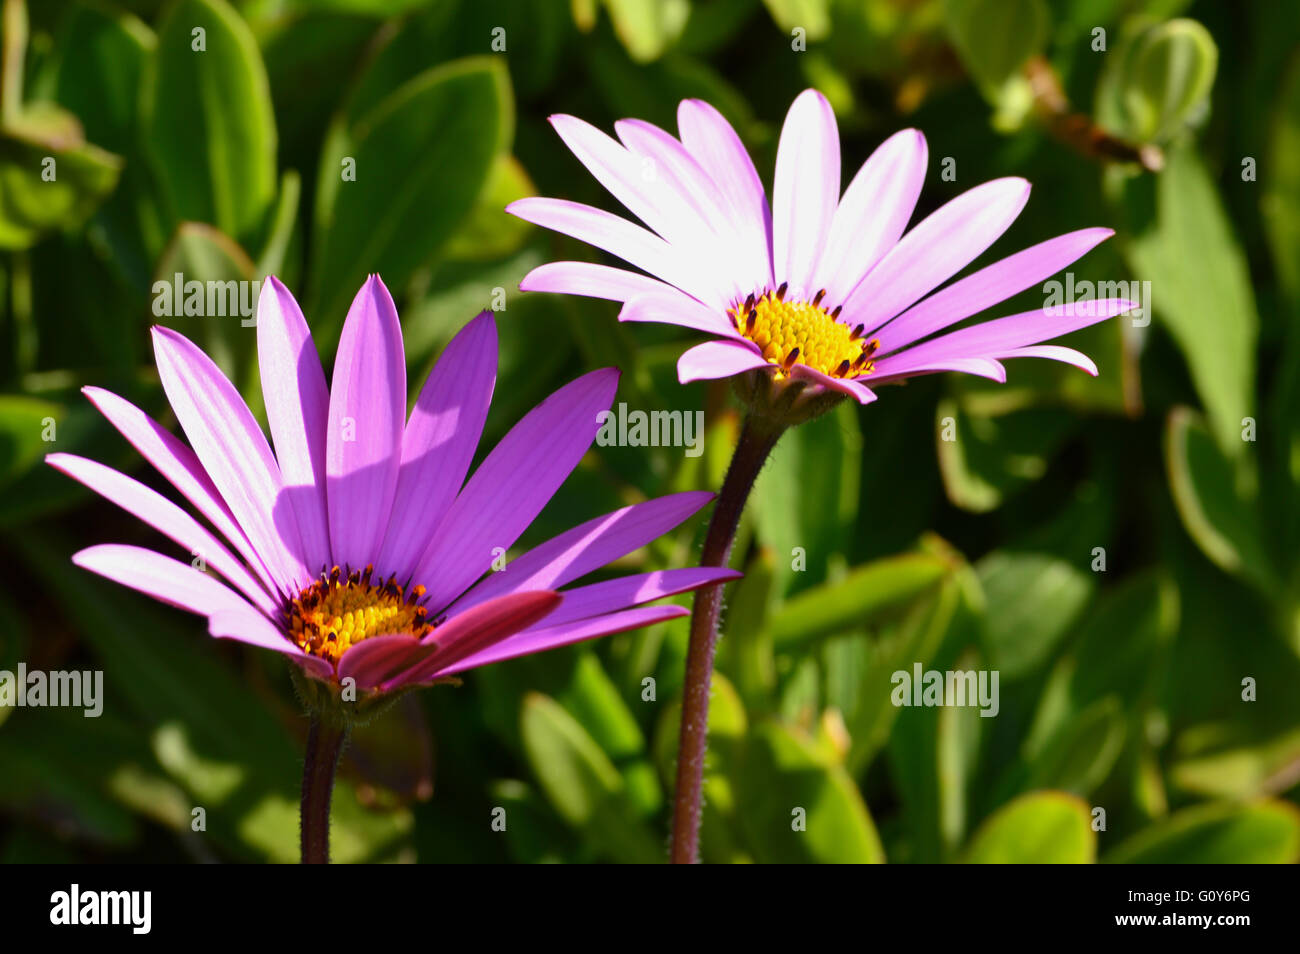 Pink daisy like flower stock photos pink daisy like flower stock a pink daisy like flower osteospermum jucundum found below roundham head goodrington izmirmasajfo